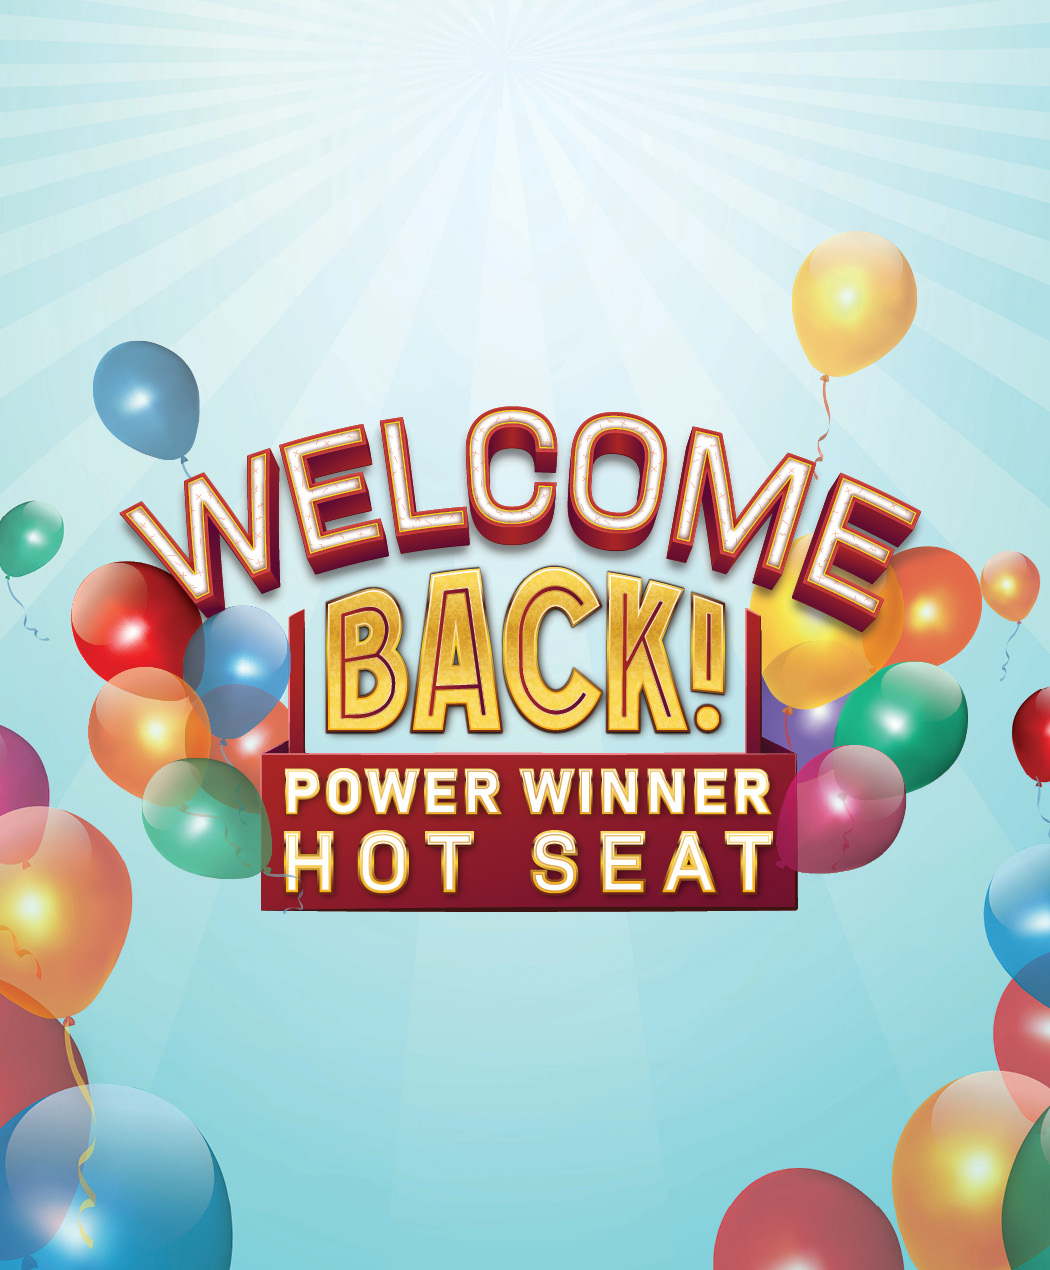 Welcome Back Power Winner Hot Seat